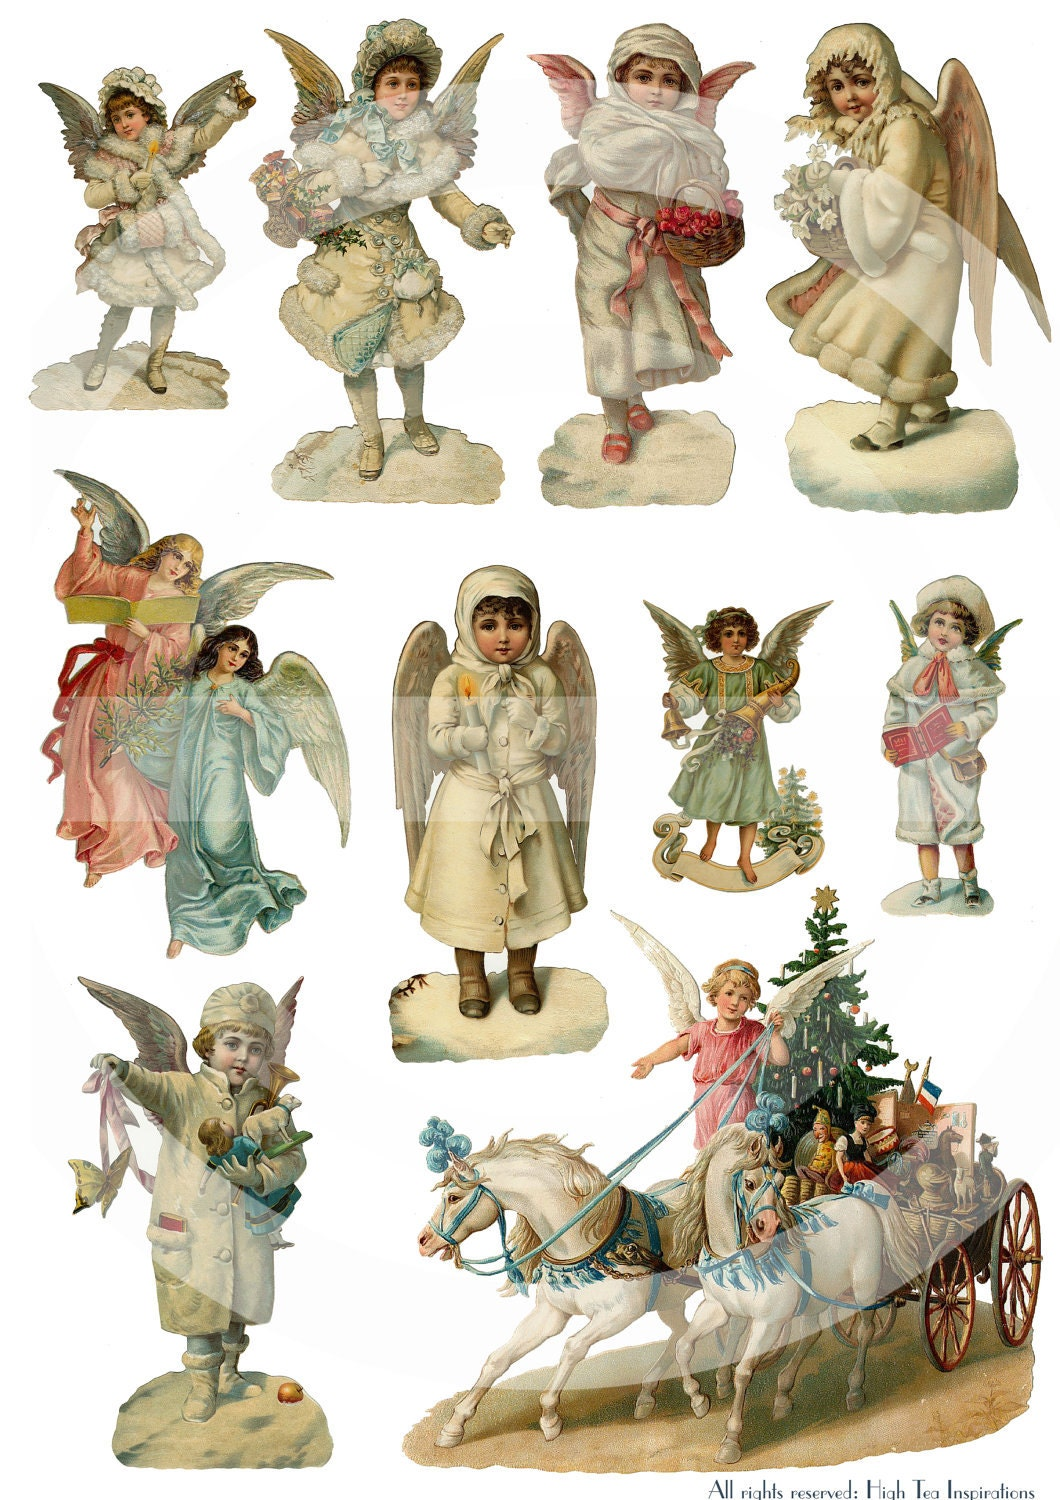 CHRISTMAS ANGELS Vintage Die Cuts Collage Sheet Digital